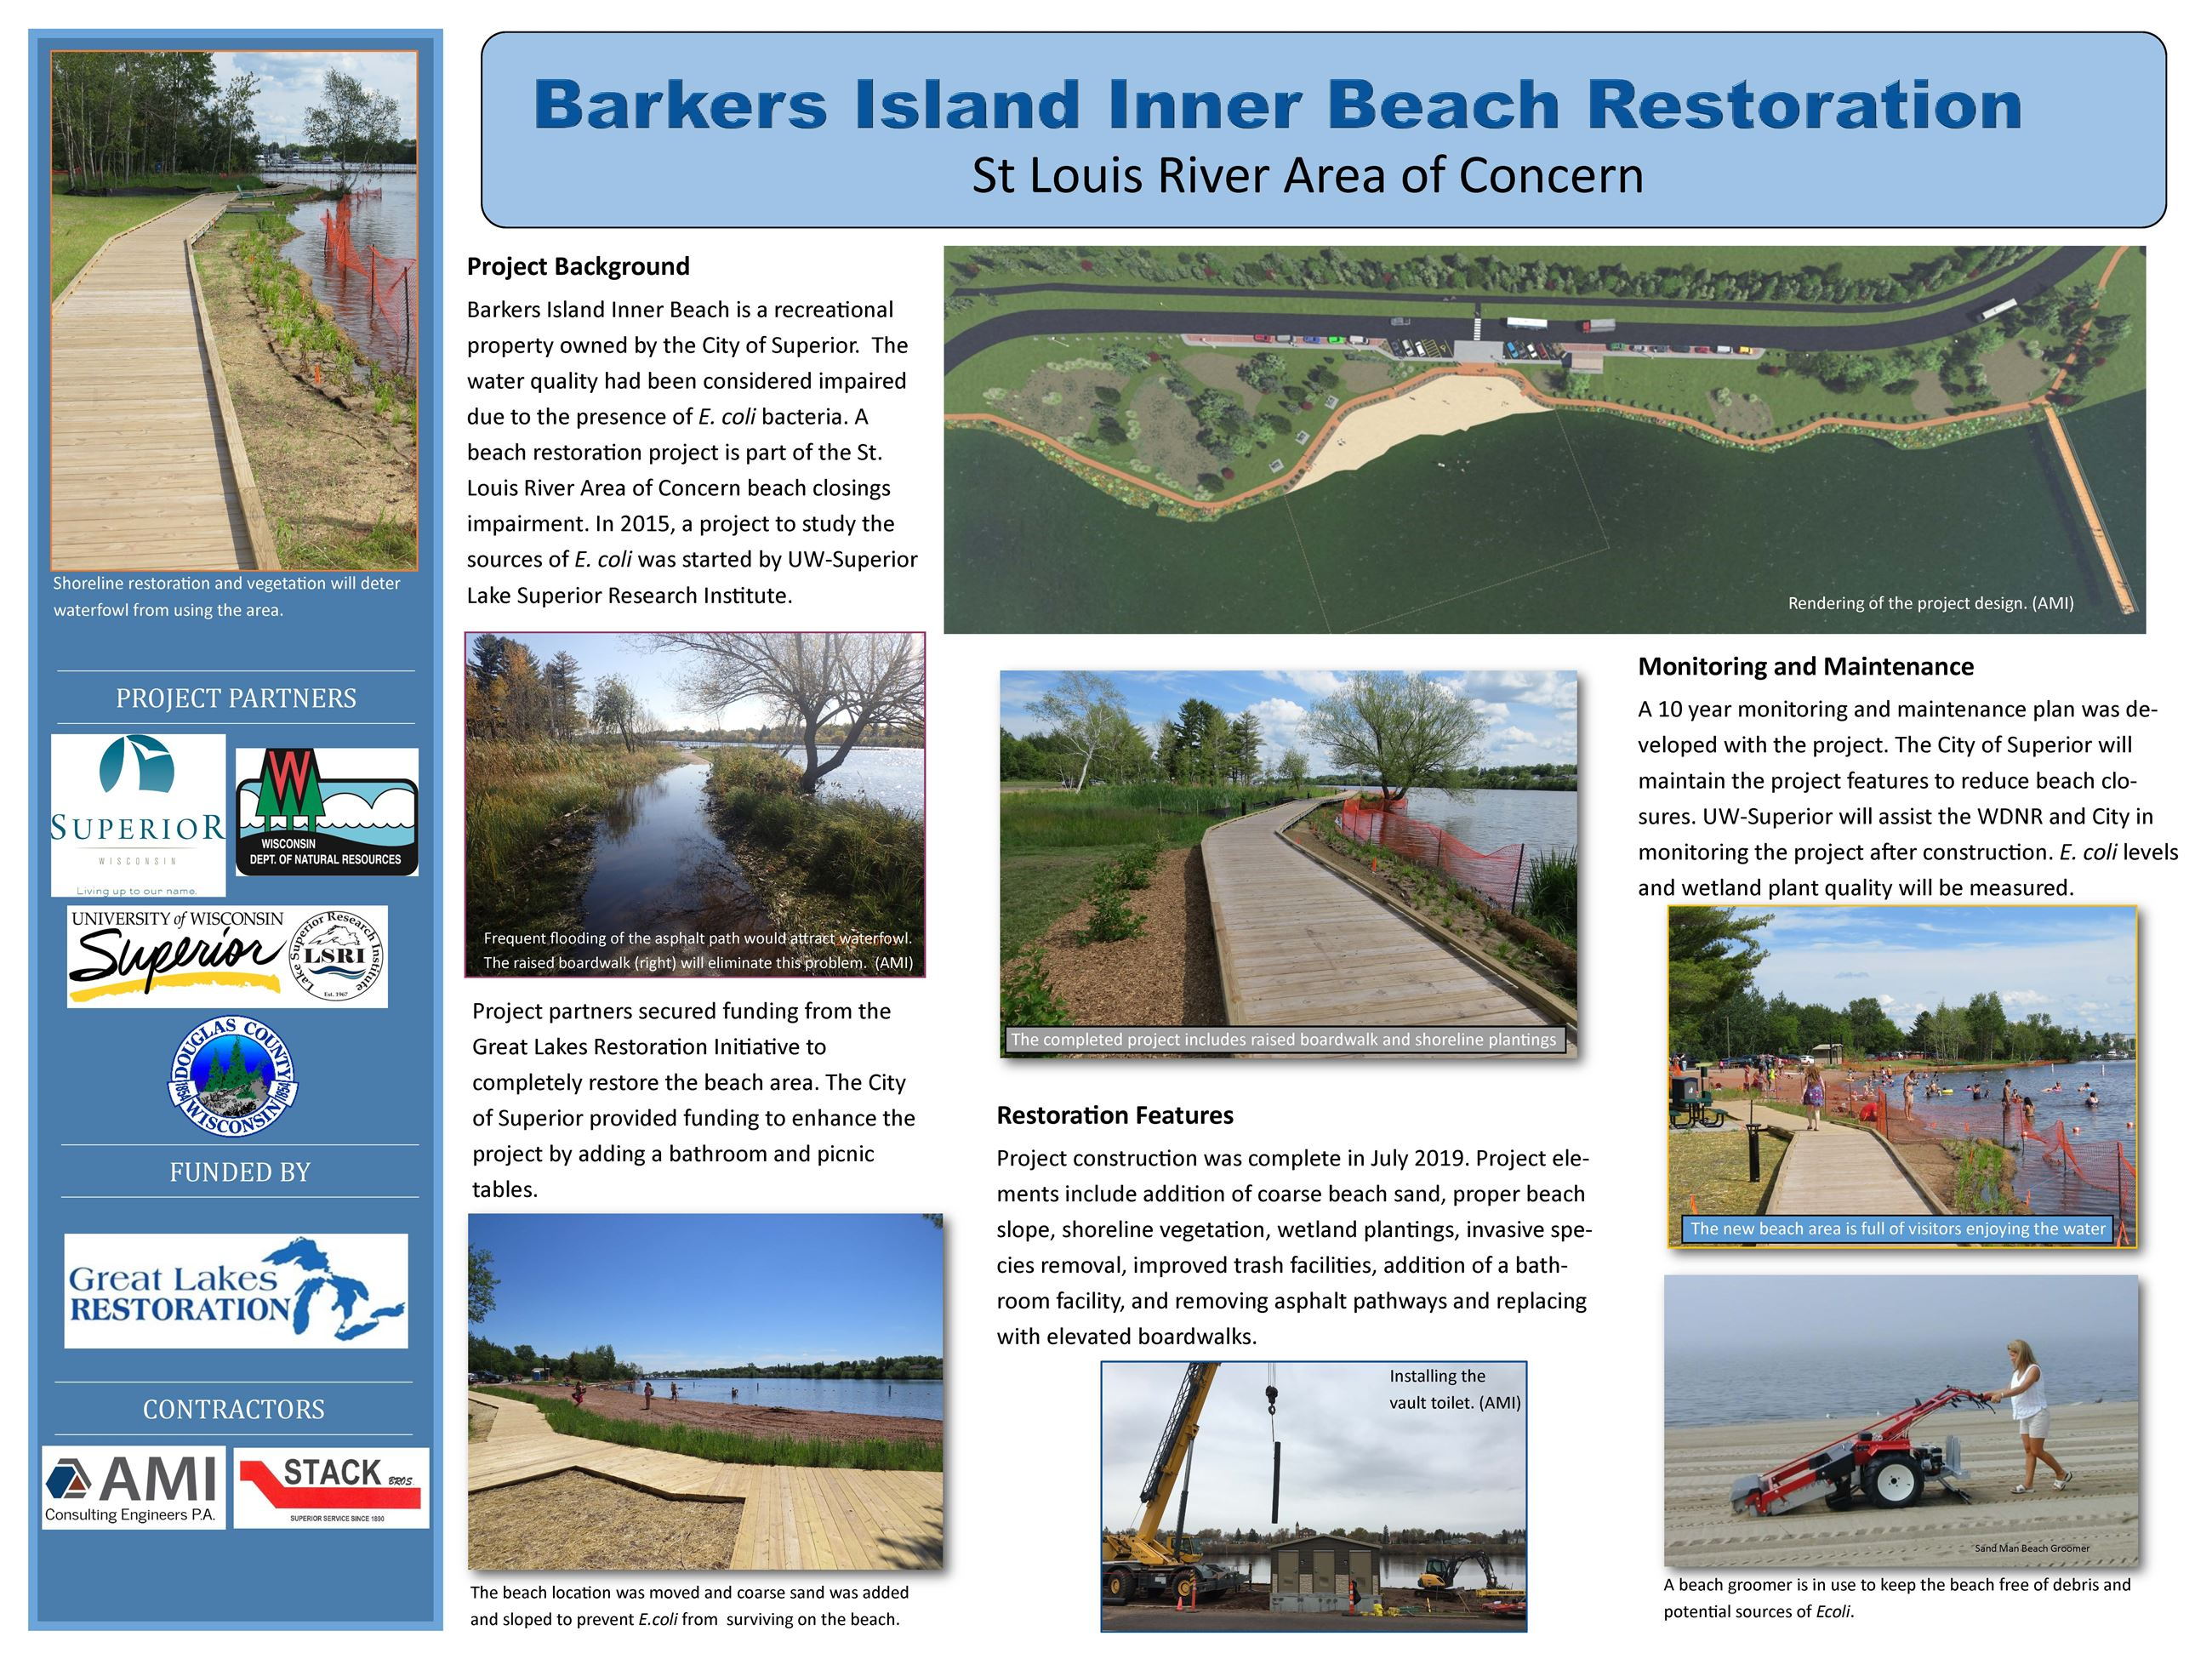 Barkers Island Poster with the project background